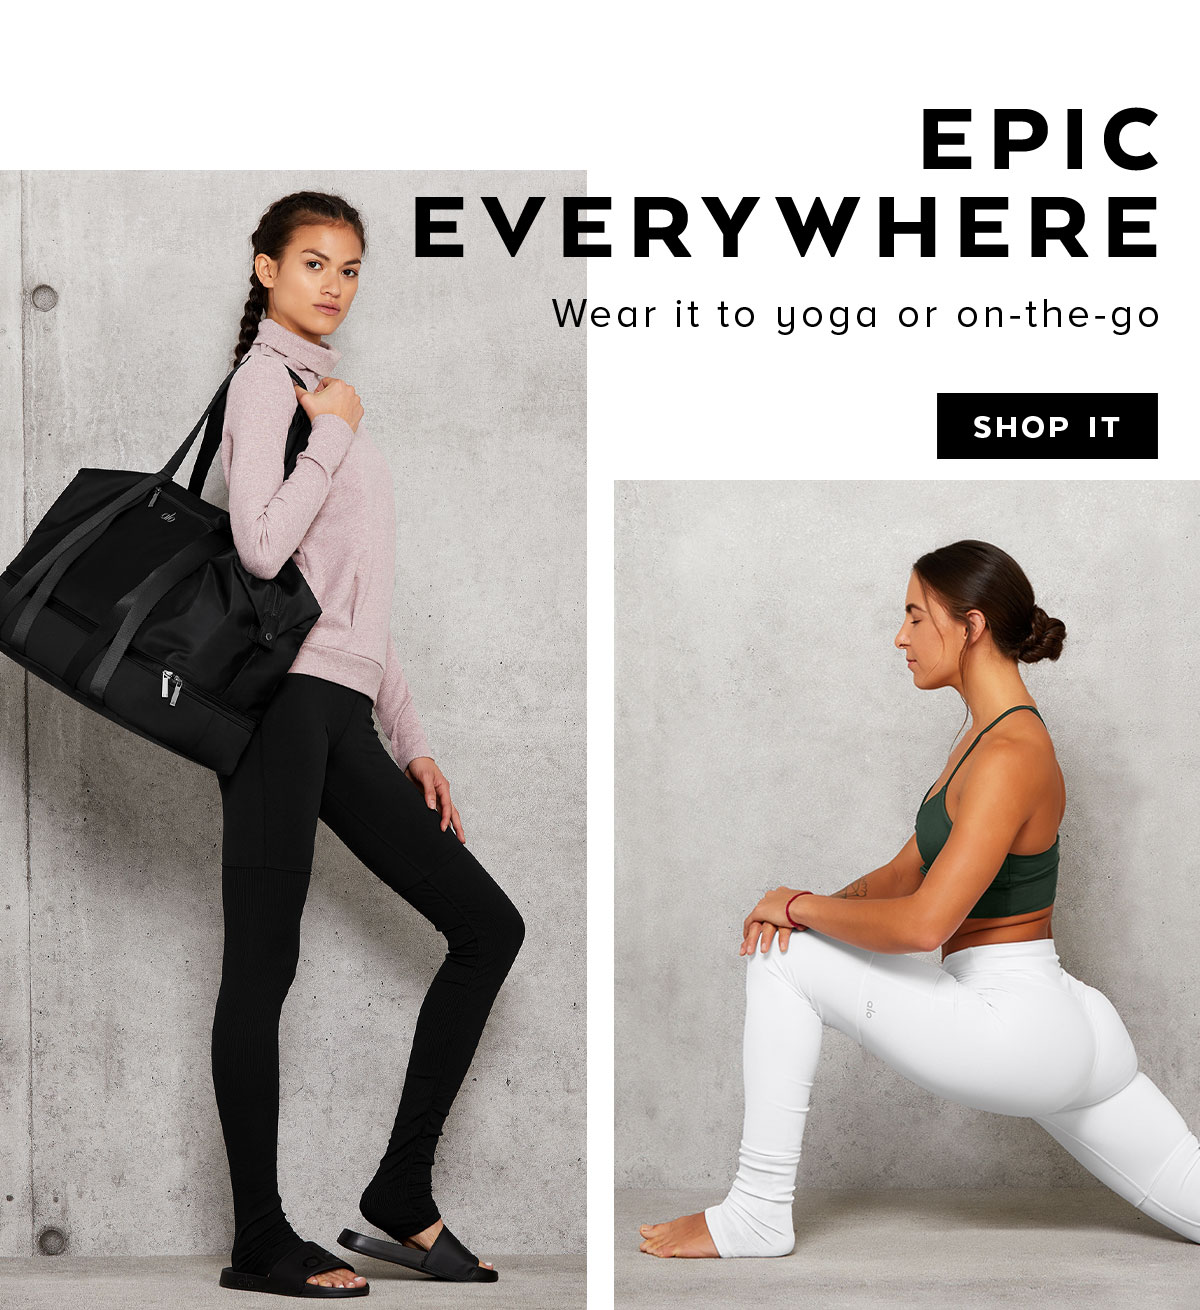 EPIC EVERYWHERE. Wear it to yoga or on-the-go. SHOP IT